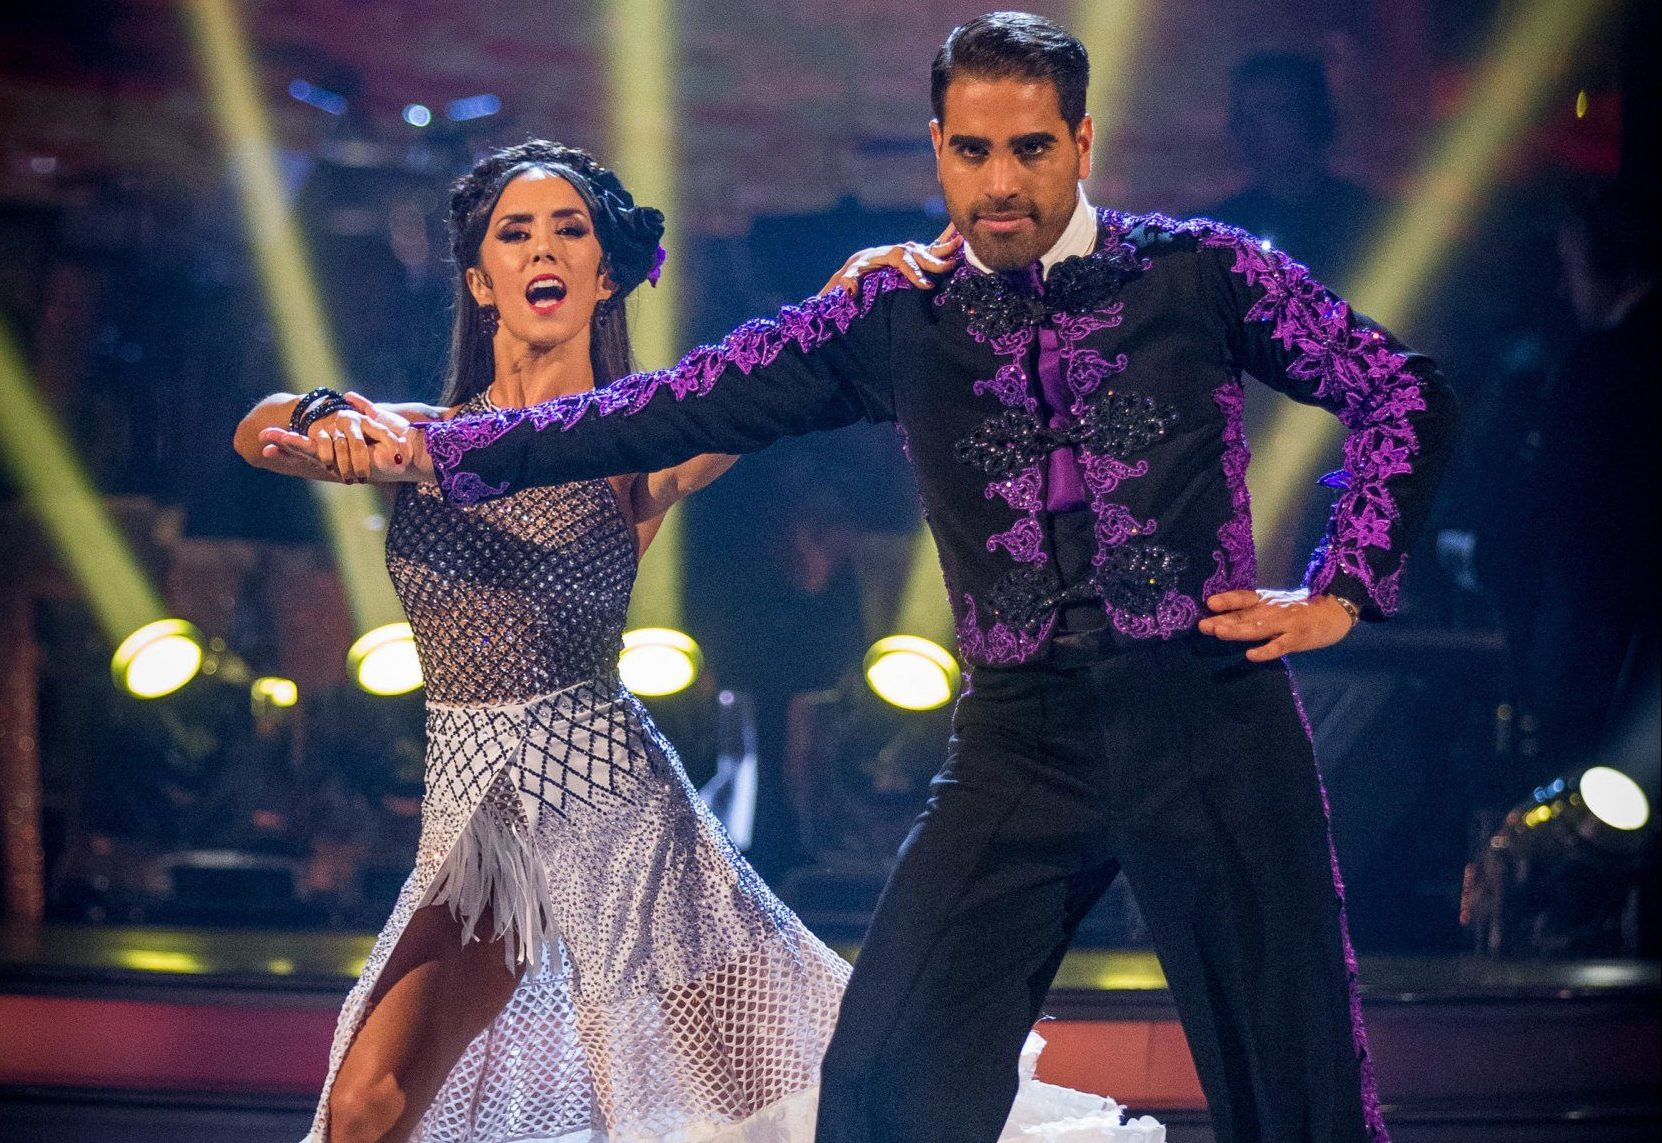 For use in UK, Ireland or Benelux countries only Undated BBC handout photo of Janette Manrara and Dr Ranj Singh. PRESS ASSOCIATION Photo. Issue date: Saturday October 13, 2018. See PA story SHOWBIZ Strictly. Photo credit should read: Guy Levy/BBC/PA Wire NOTE TO EDITORS: Not for use more than 21 days after issue. You may use this picture without charge only for the purpose of publicising or reporting on current BBC programming, personnel or other BBC output or activity within 21 days of issue. Any use after that time MUST be cleared through BBC Picture Publicity. Please credit the image to the BBC and any named photographer or independent programme maker, as described in th